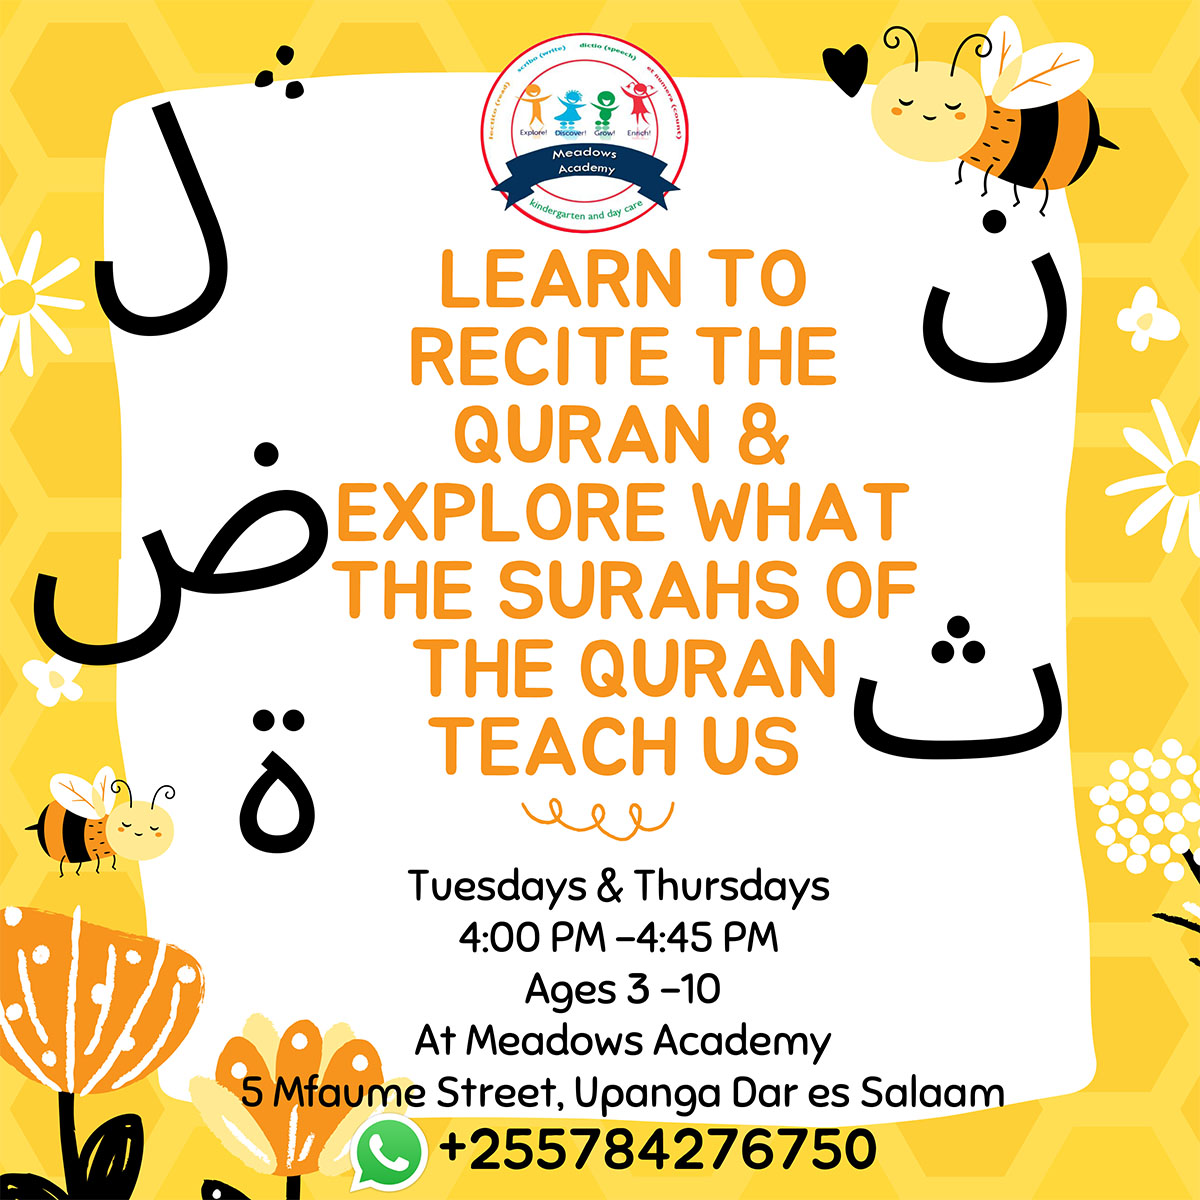 Meadows-Academy-Quran-Classes-for-Children